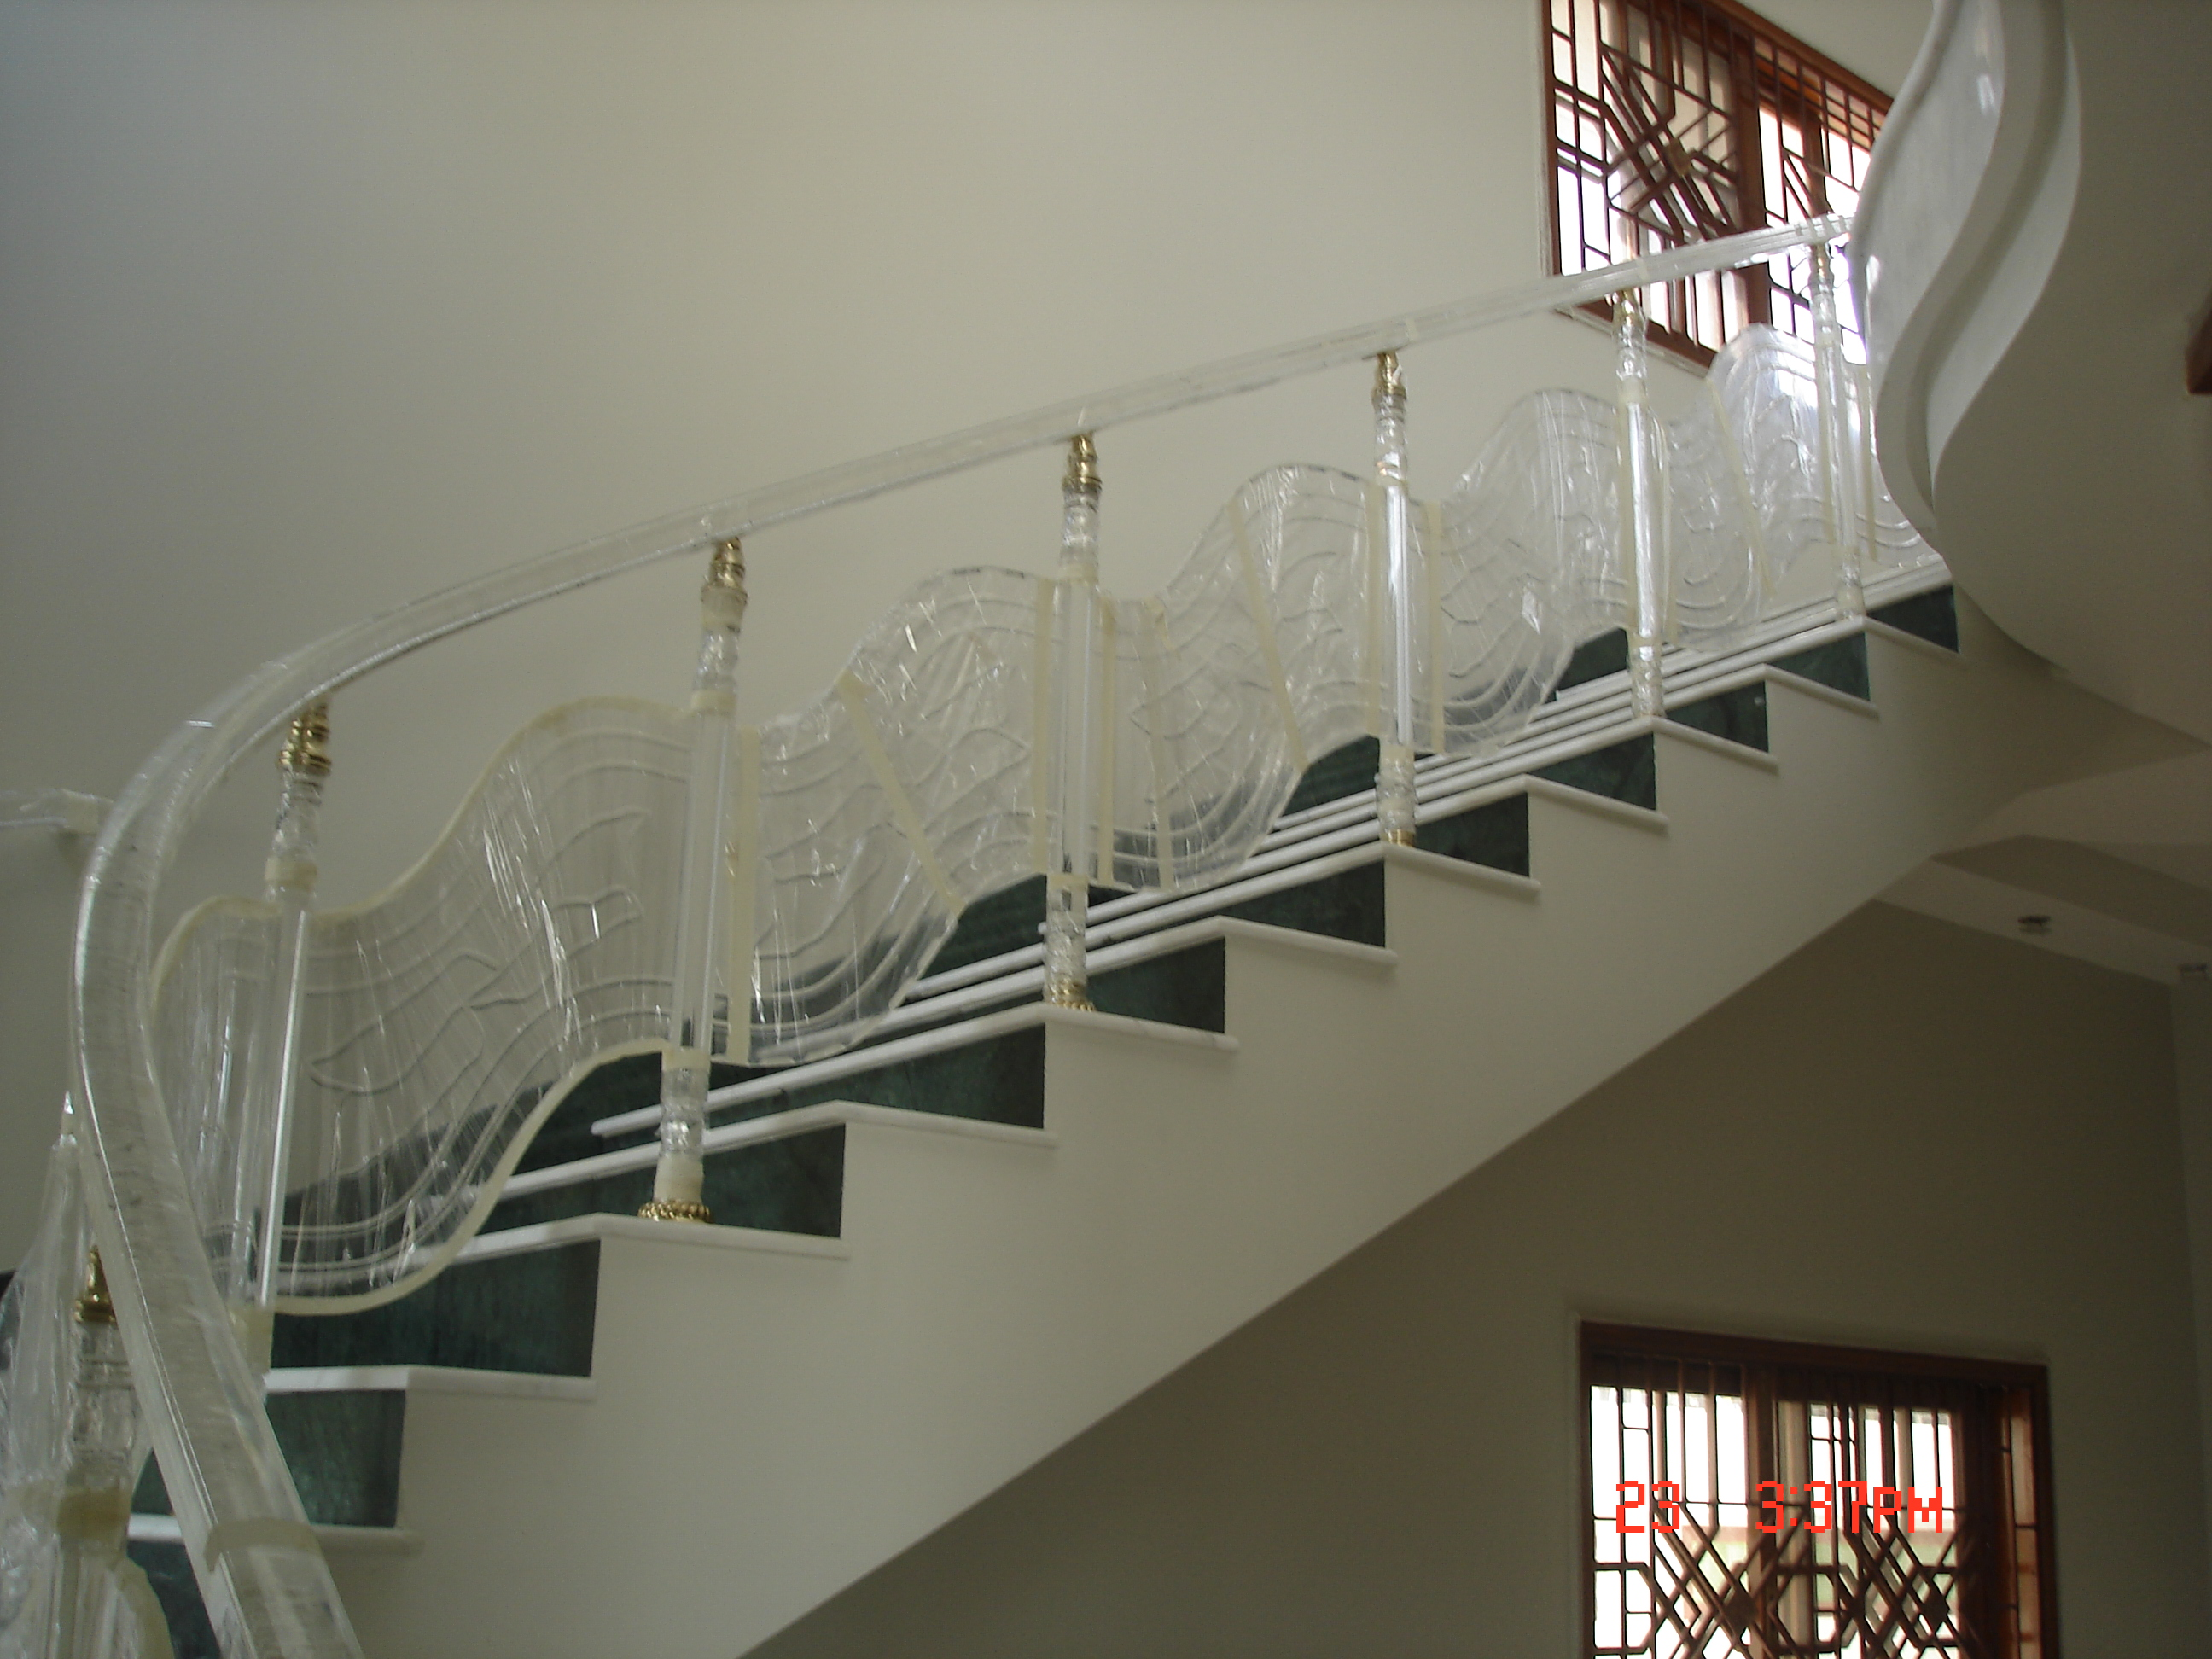 Balustrade Tangga Mr Samad Acrylic Stair Railing With Acrylic Panel 2